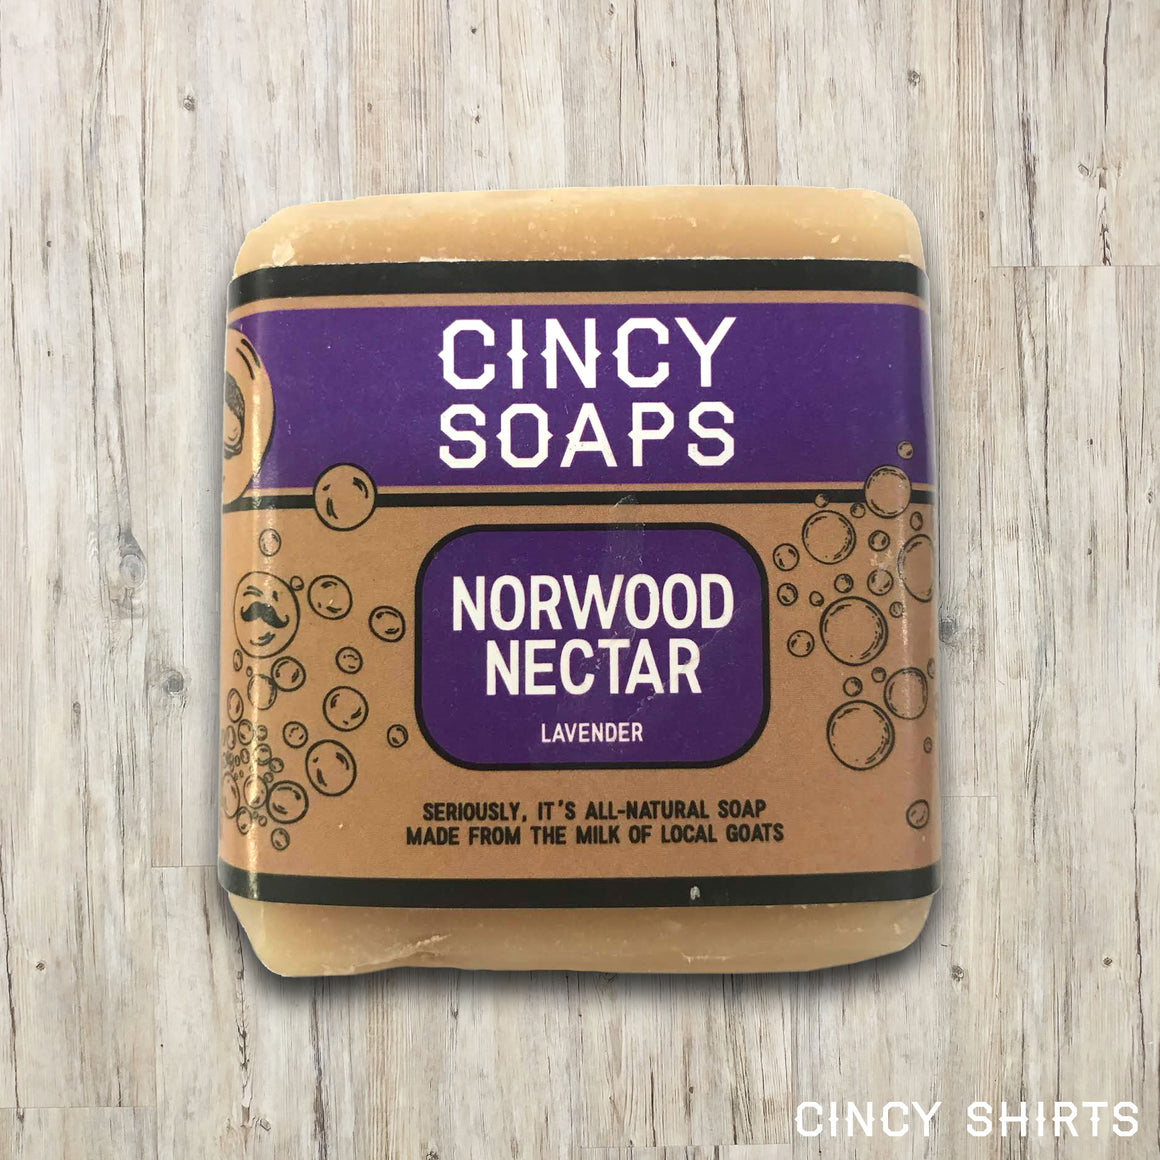 Norwood Nectar - Lavender - Cincy Soaps - Cincy Shirts